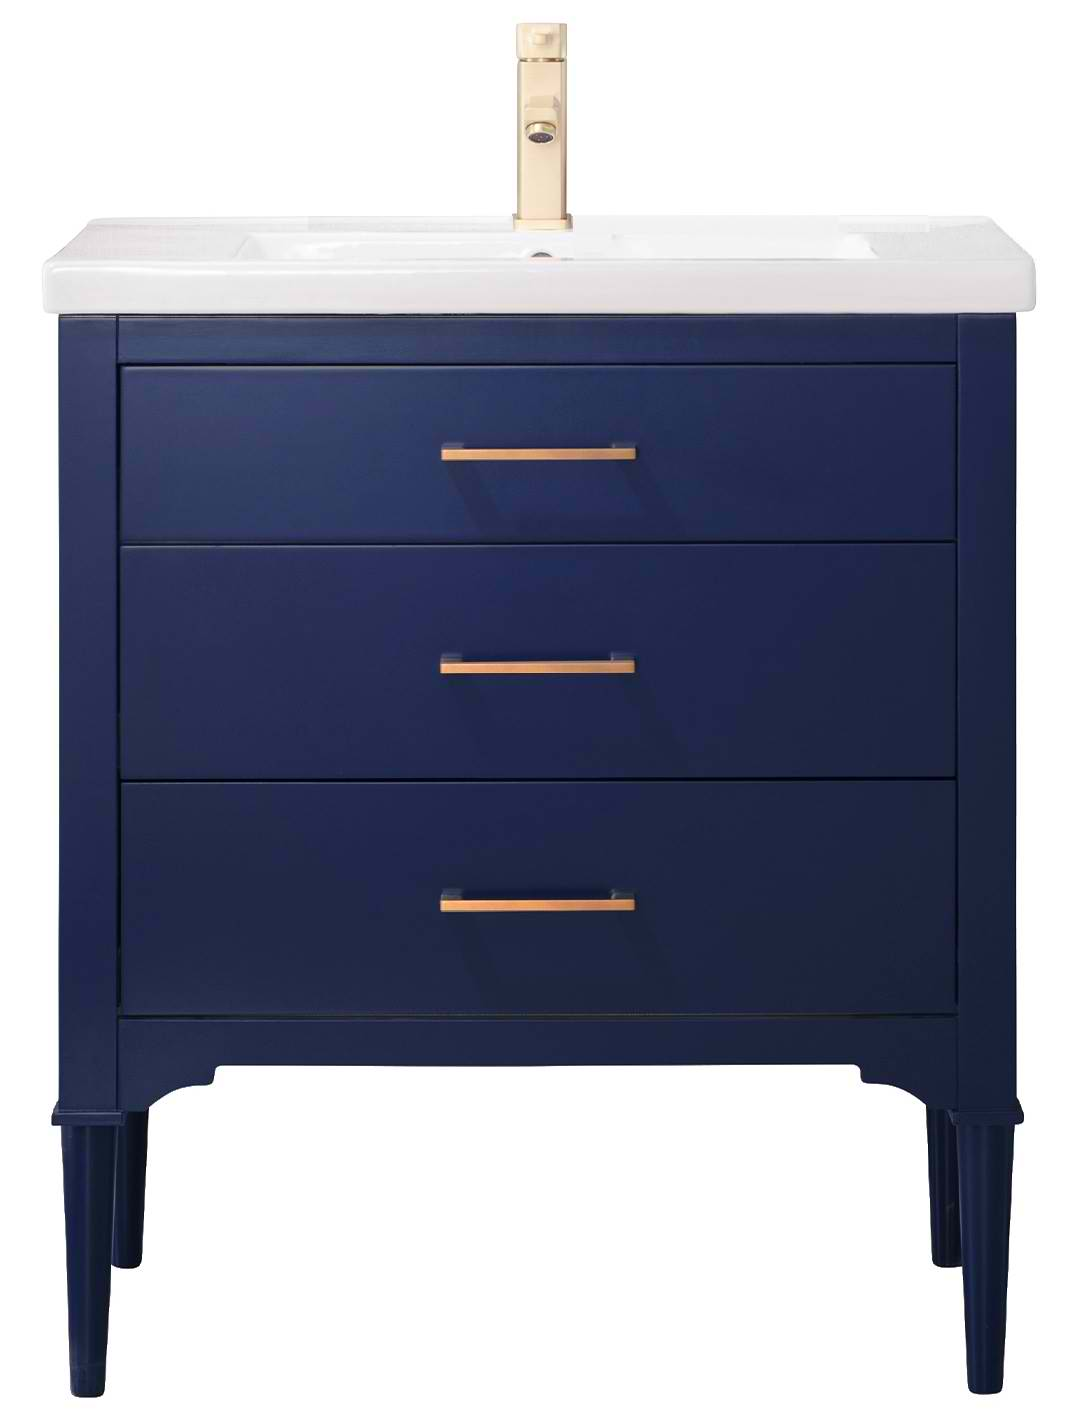 "30"" Transitional Single Sink Vanity with Porcelain Integrated Counterop and Sink in Blue Finish"